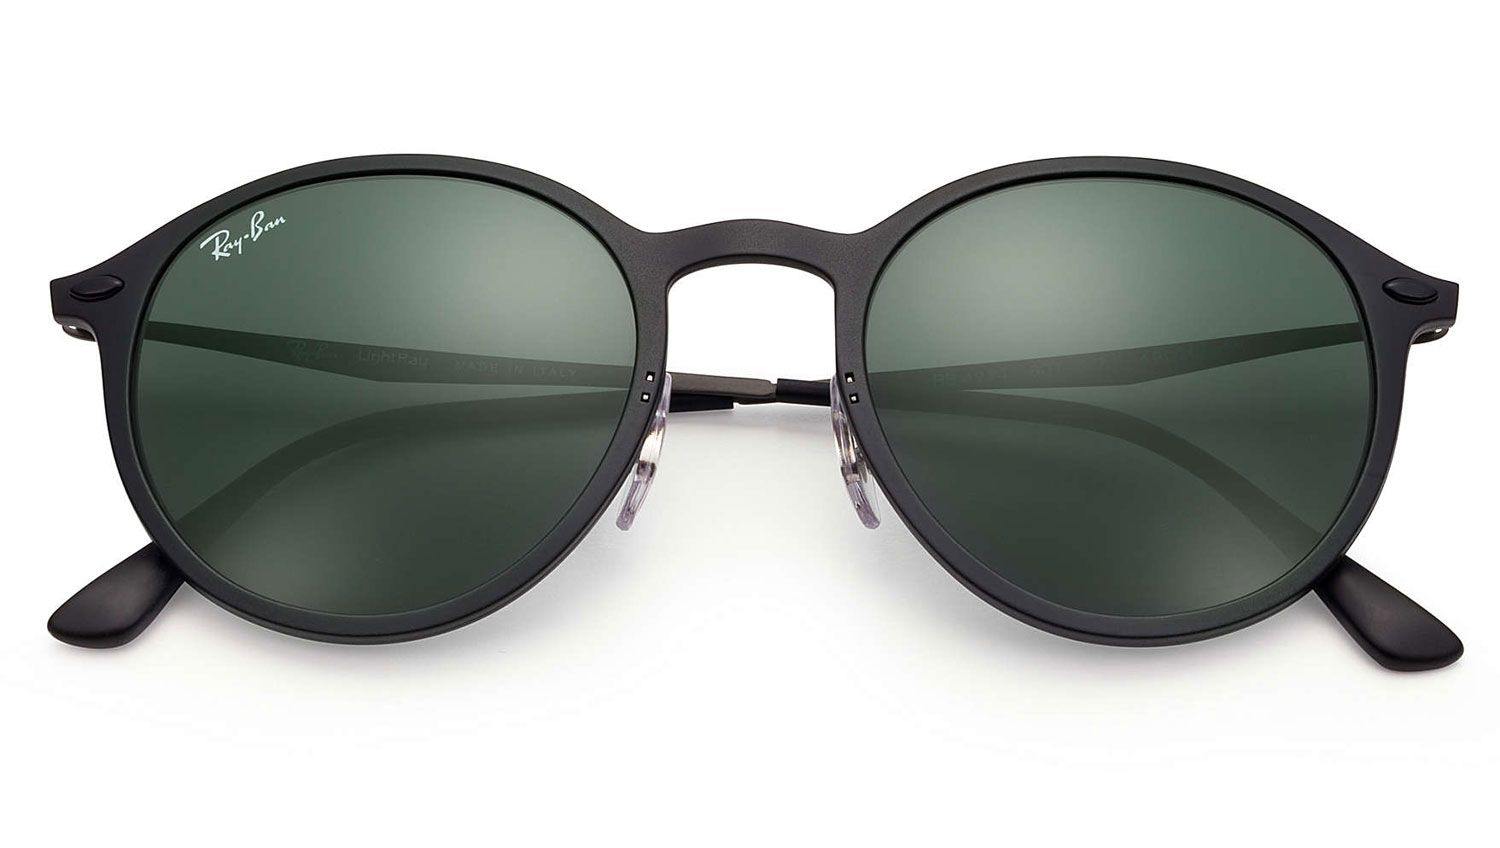 98142c1098 ... Round Light Ray Black And Green Classic Sunglasses - RB4224 601S71 · Ray -Ban RB4224 601S71 - 1